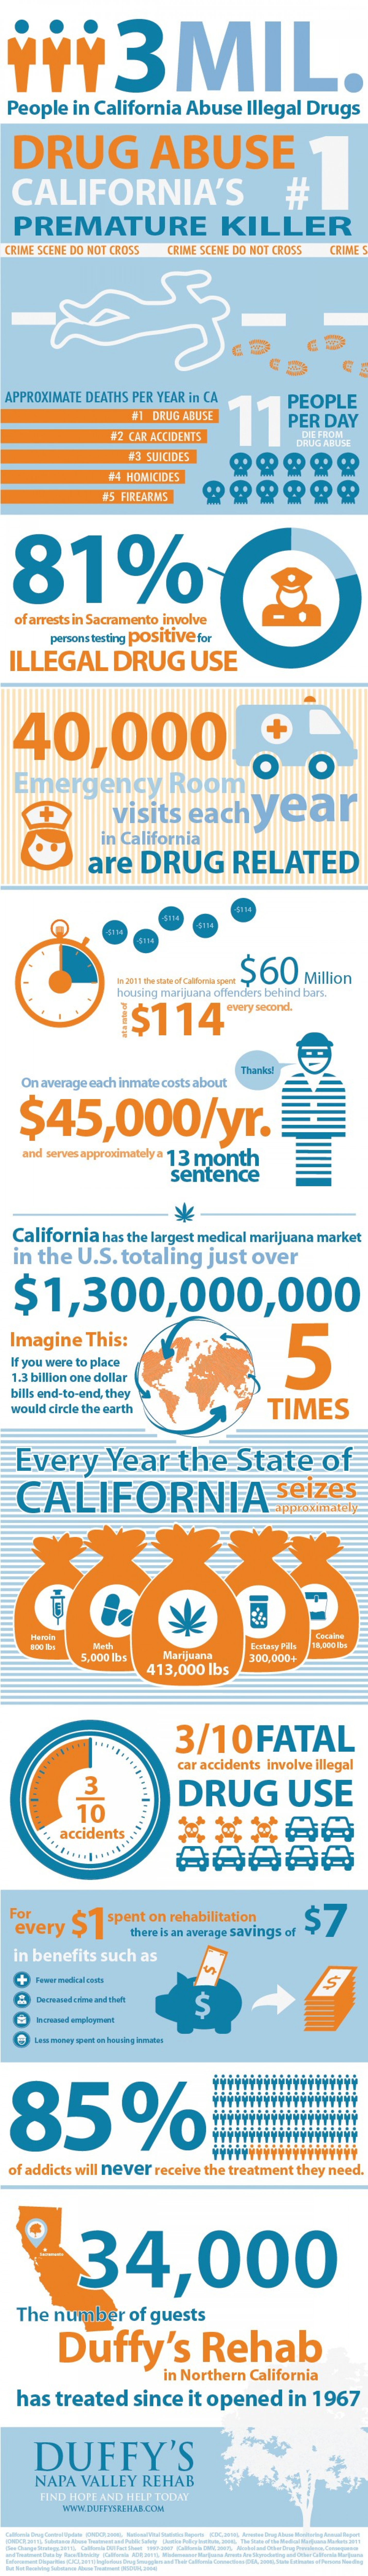 California Drug Abuse Statistics Infographic